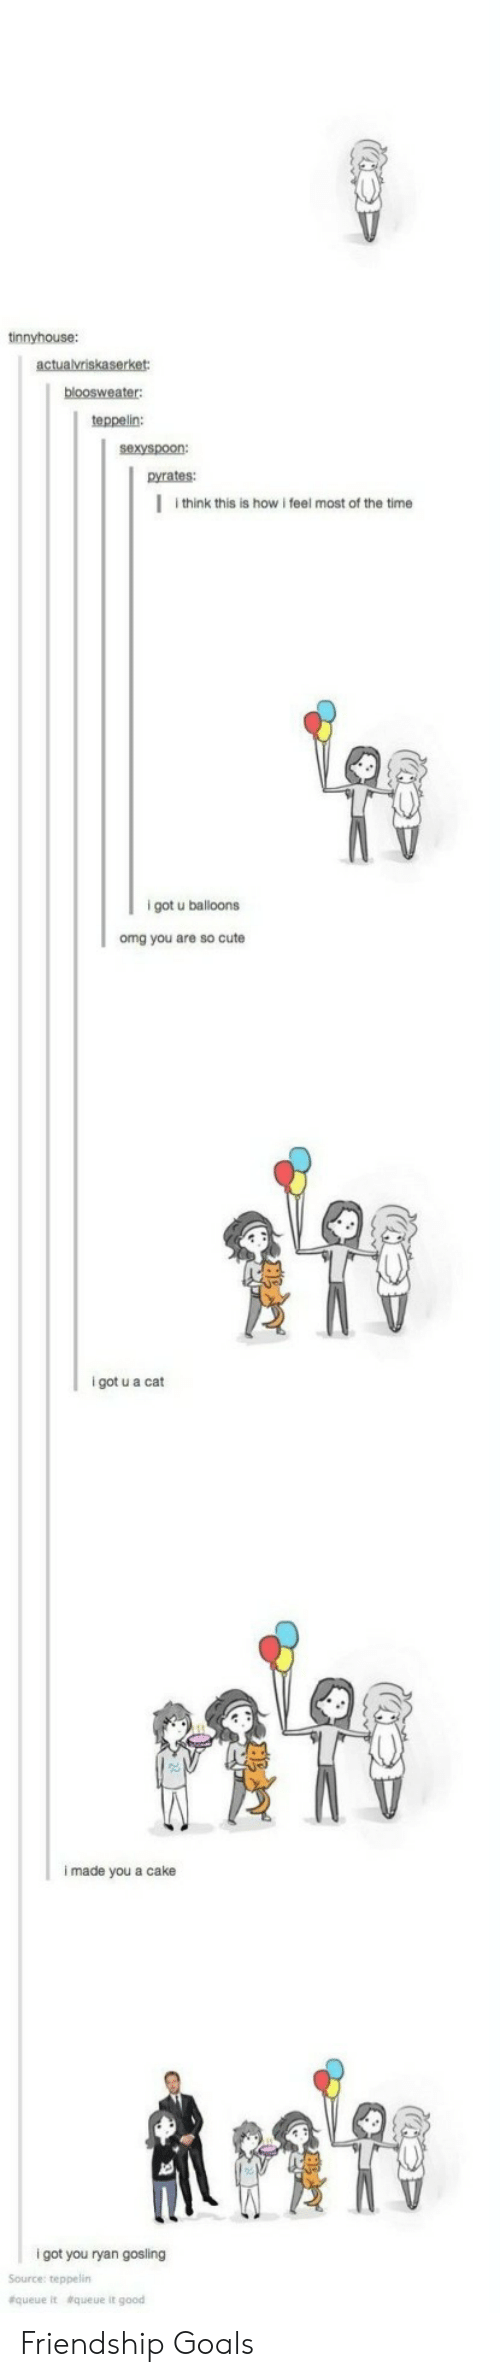 Ryan Gosling: tinnyhouse:  teppelin:  sexyspoon:  pyrates:  I think this is how i feel most of the time  9  igot u balloons  omg you are so cute  i got u a cat  i made you a cake  i got you ryan gosling  Source: teppelin  &queue  &queue it good Friendship Goals